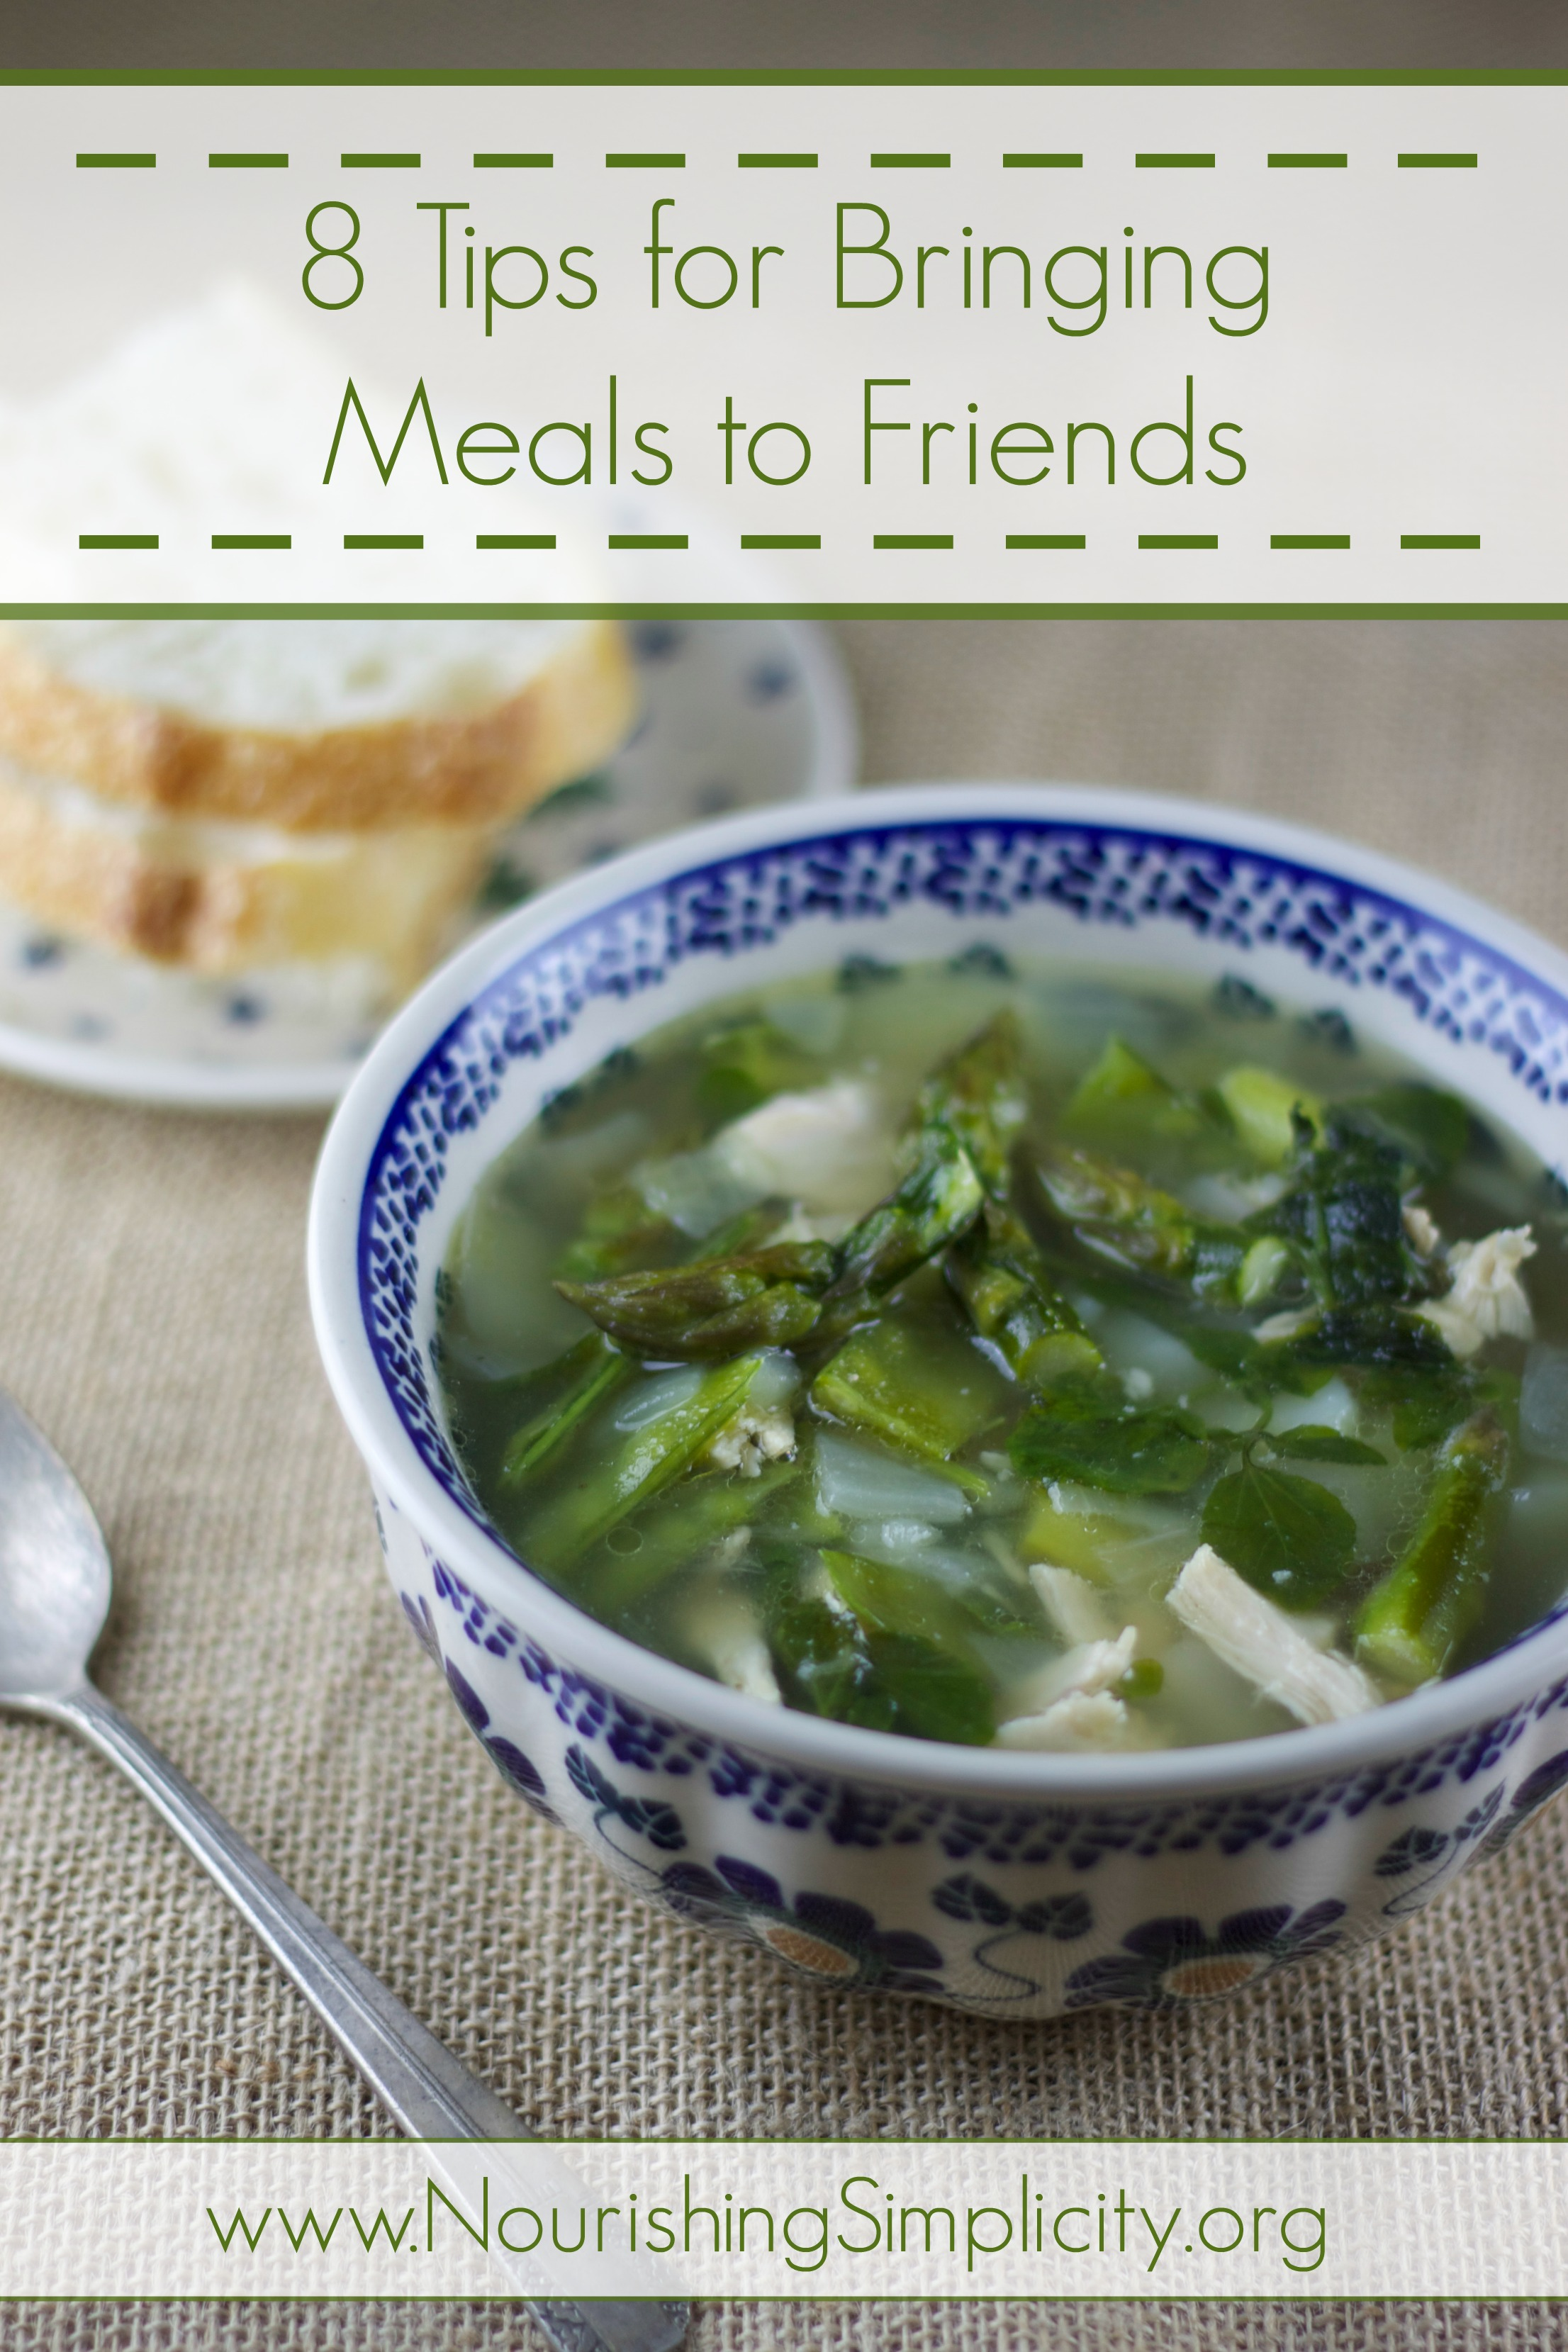 8 Tips for Bringing Meals to Friends-www.nourishingsimplicity.org